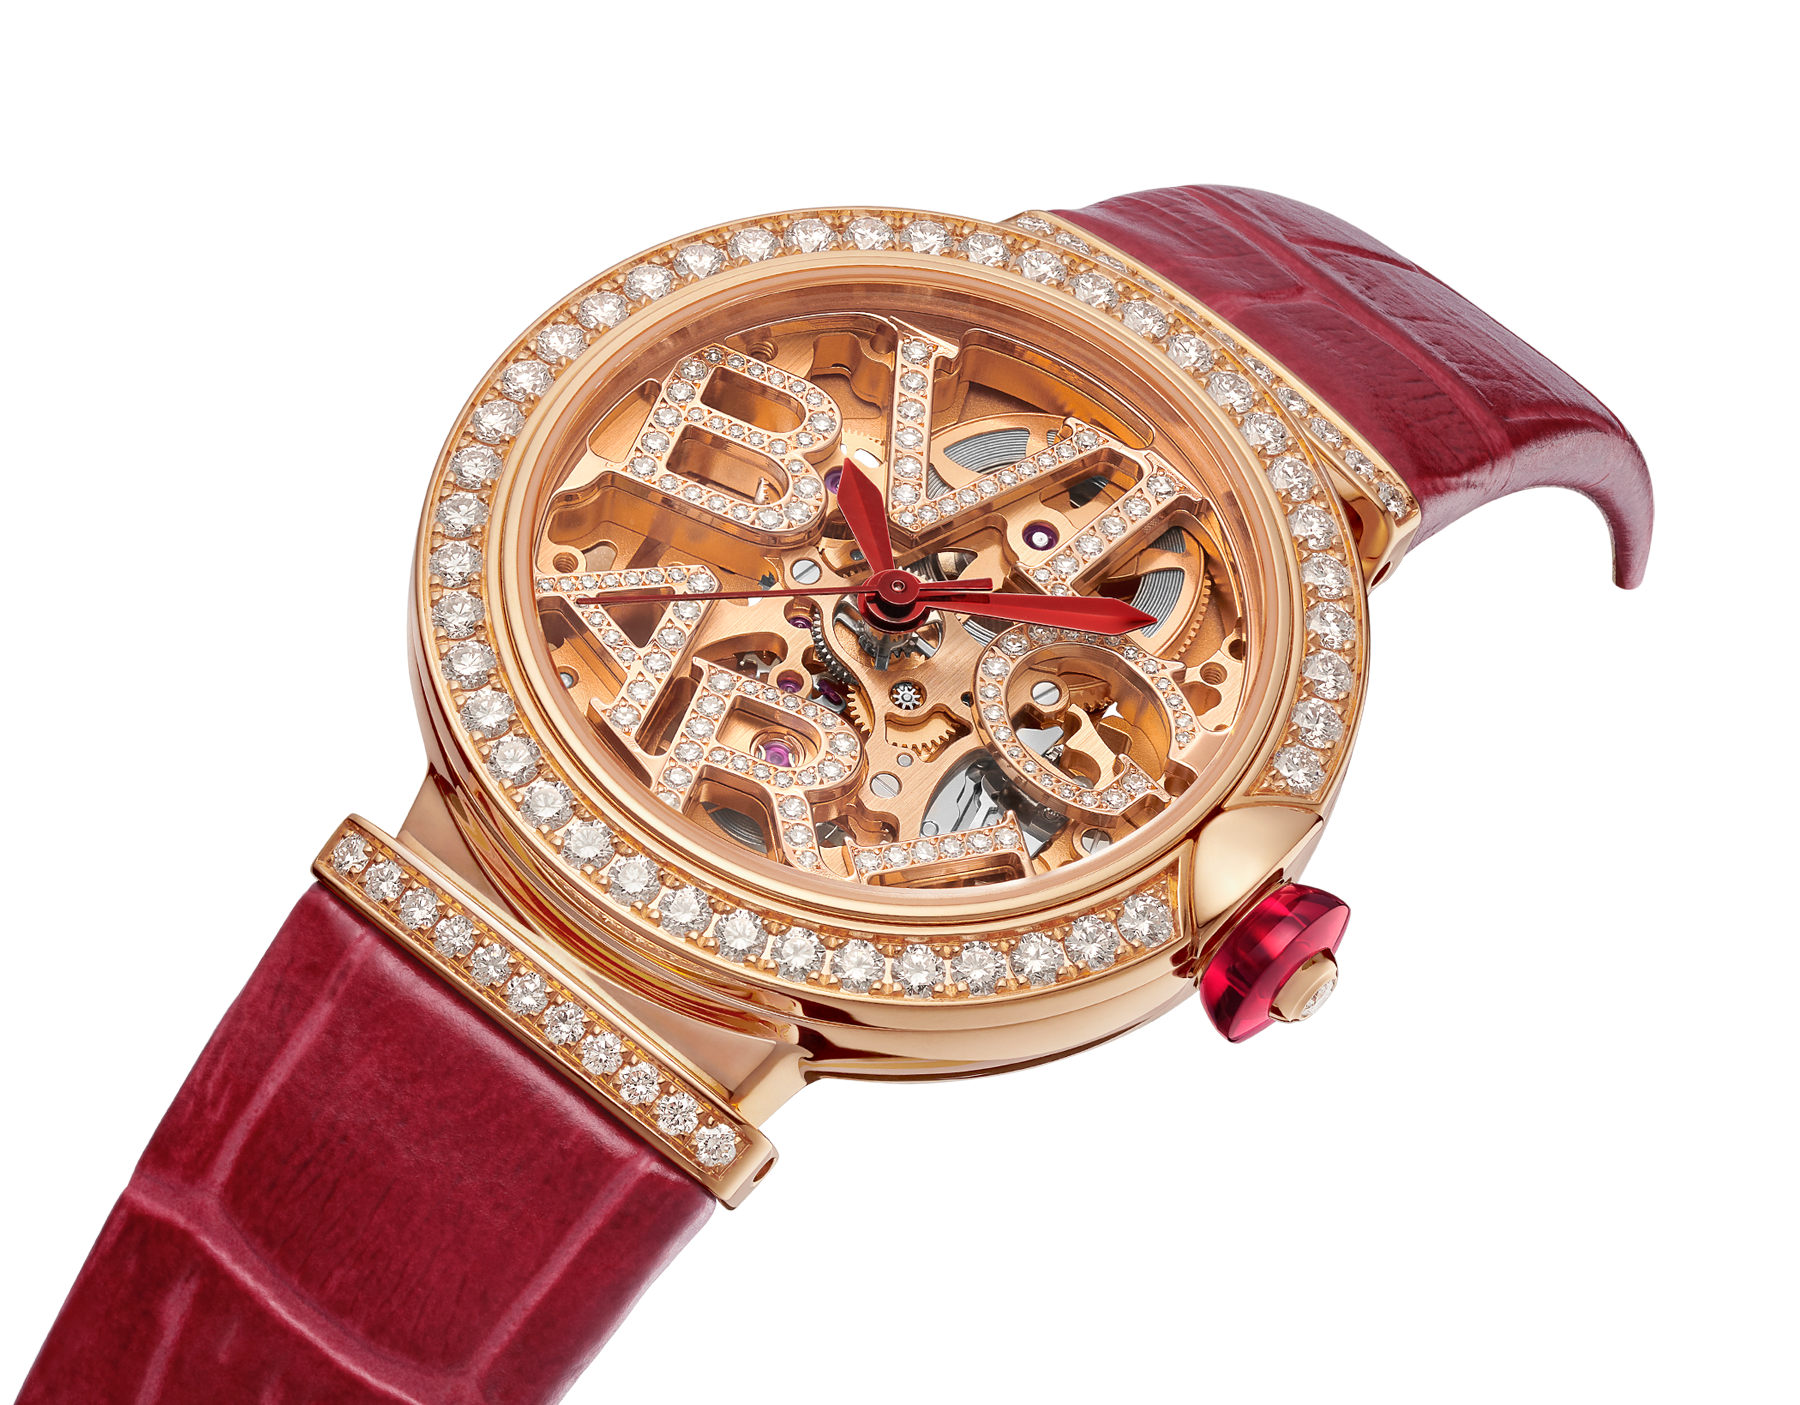 LVCEA Skeleton watch with mechanical manufacture movement, automatic winding, 18 kt rose gold case set with diamonds, openwork BVLGARI logo dial set with diamonds and red alligator bracelet 102833 image 2